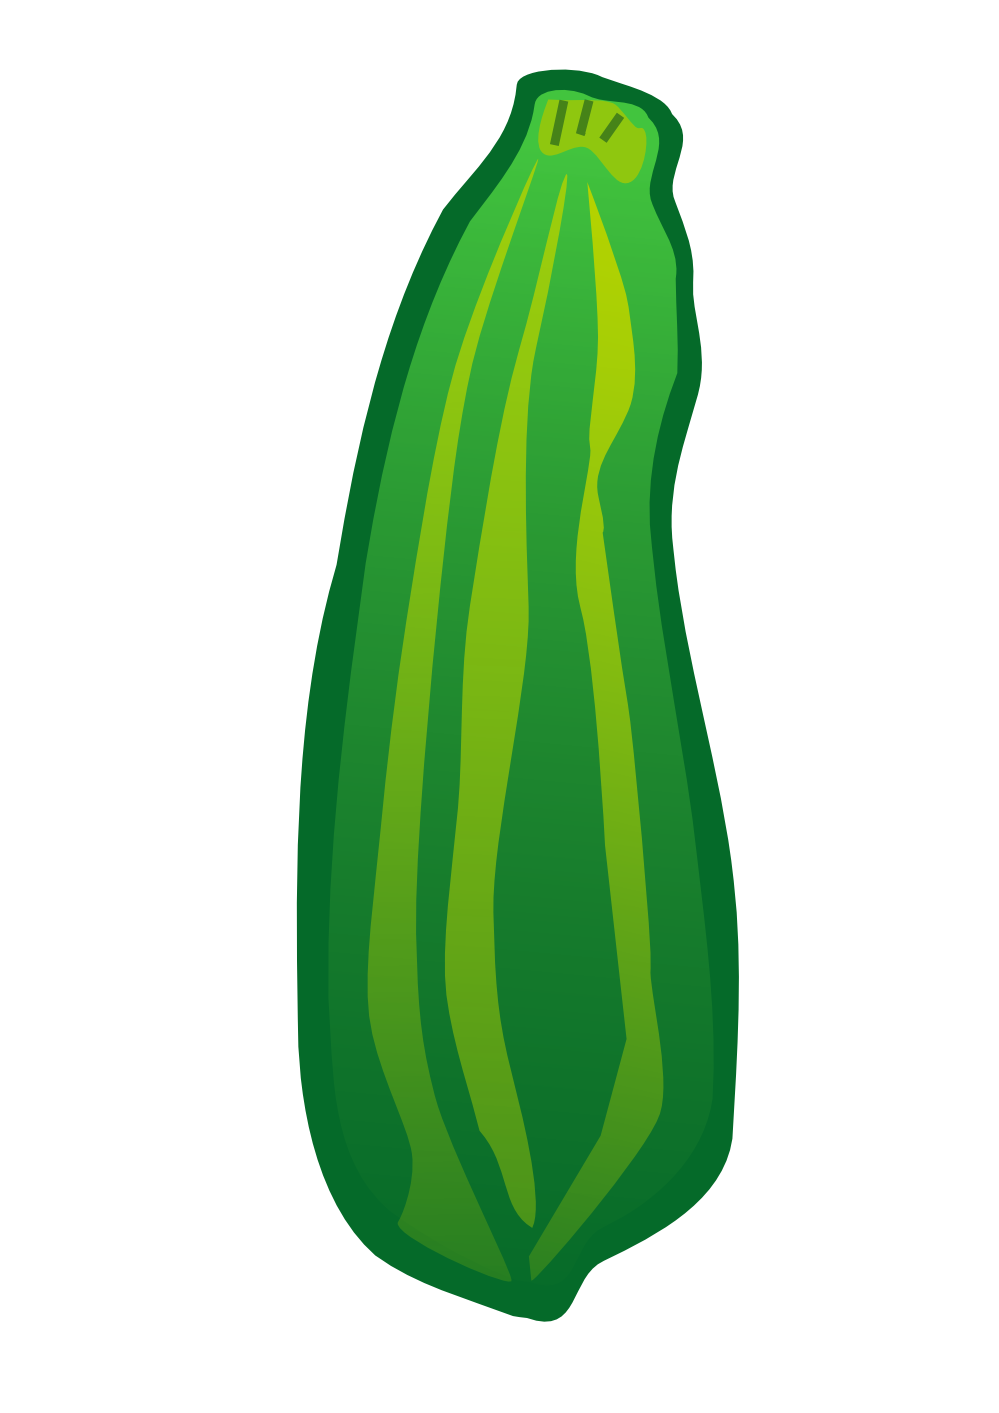 Cucumber Clipart | Free download on ClipArtMag